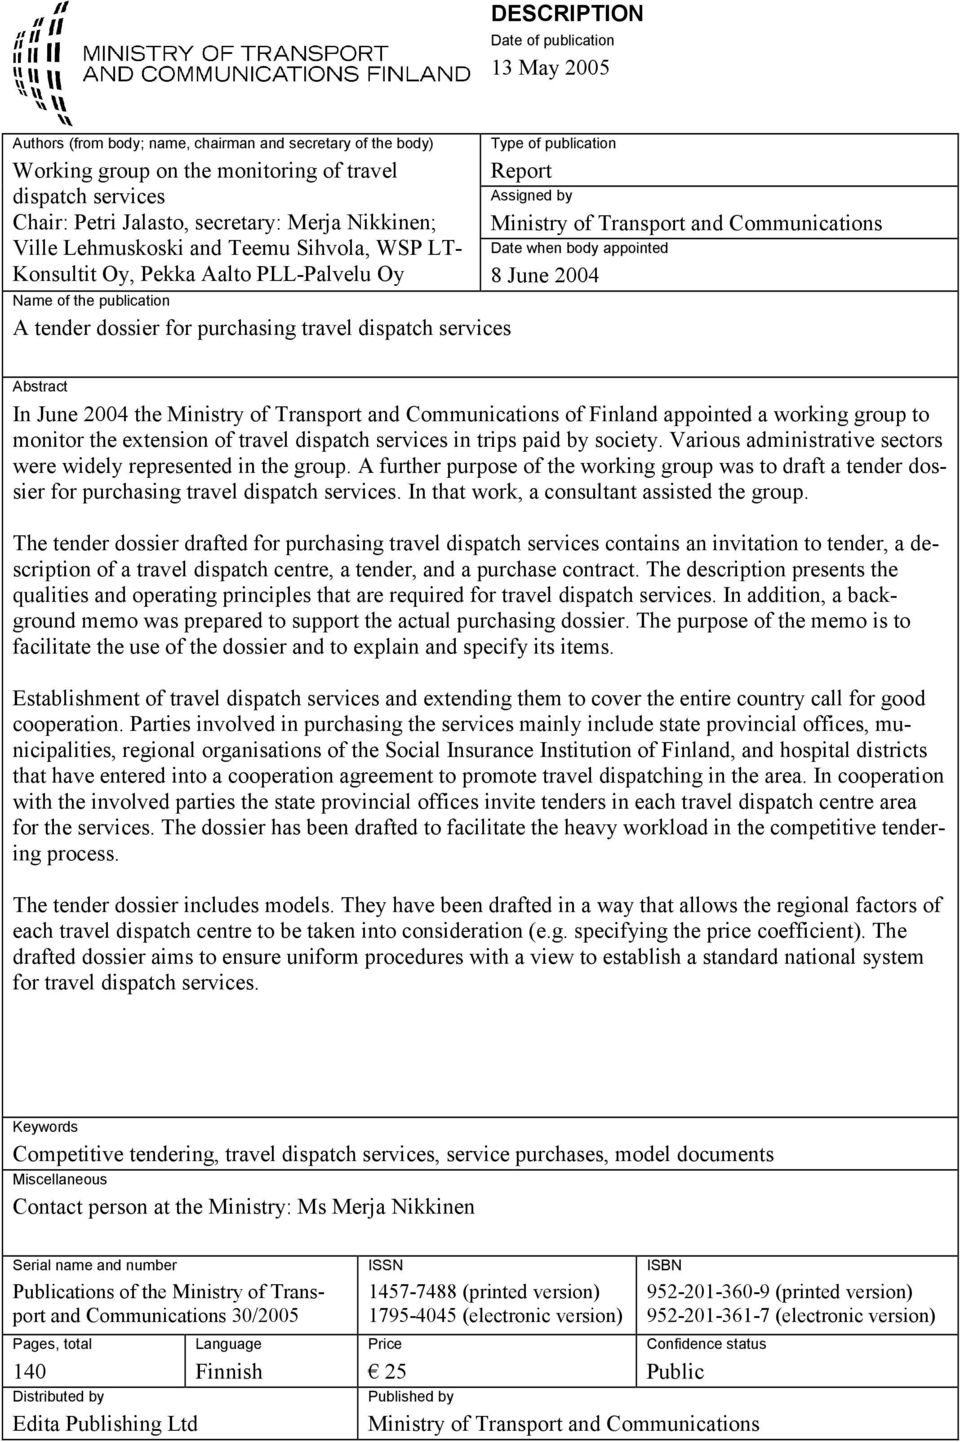 publication Report Assigned by Ministry of Transport and Communications Date when body appointed 8 June 2004 Abstract In June 2004 the Ministry of Transport and Communications of Finland appointed a